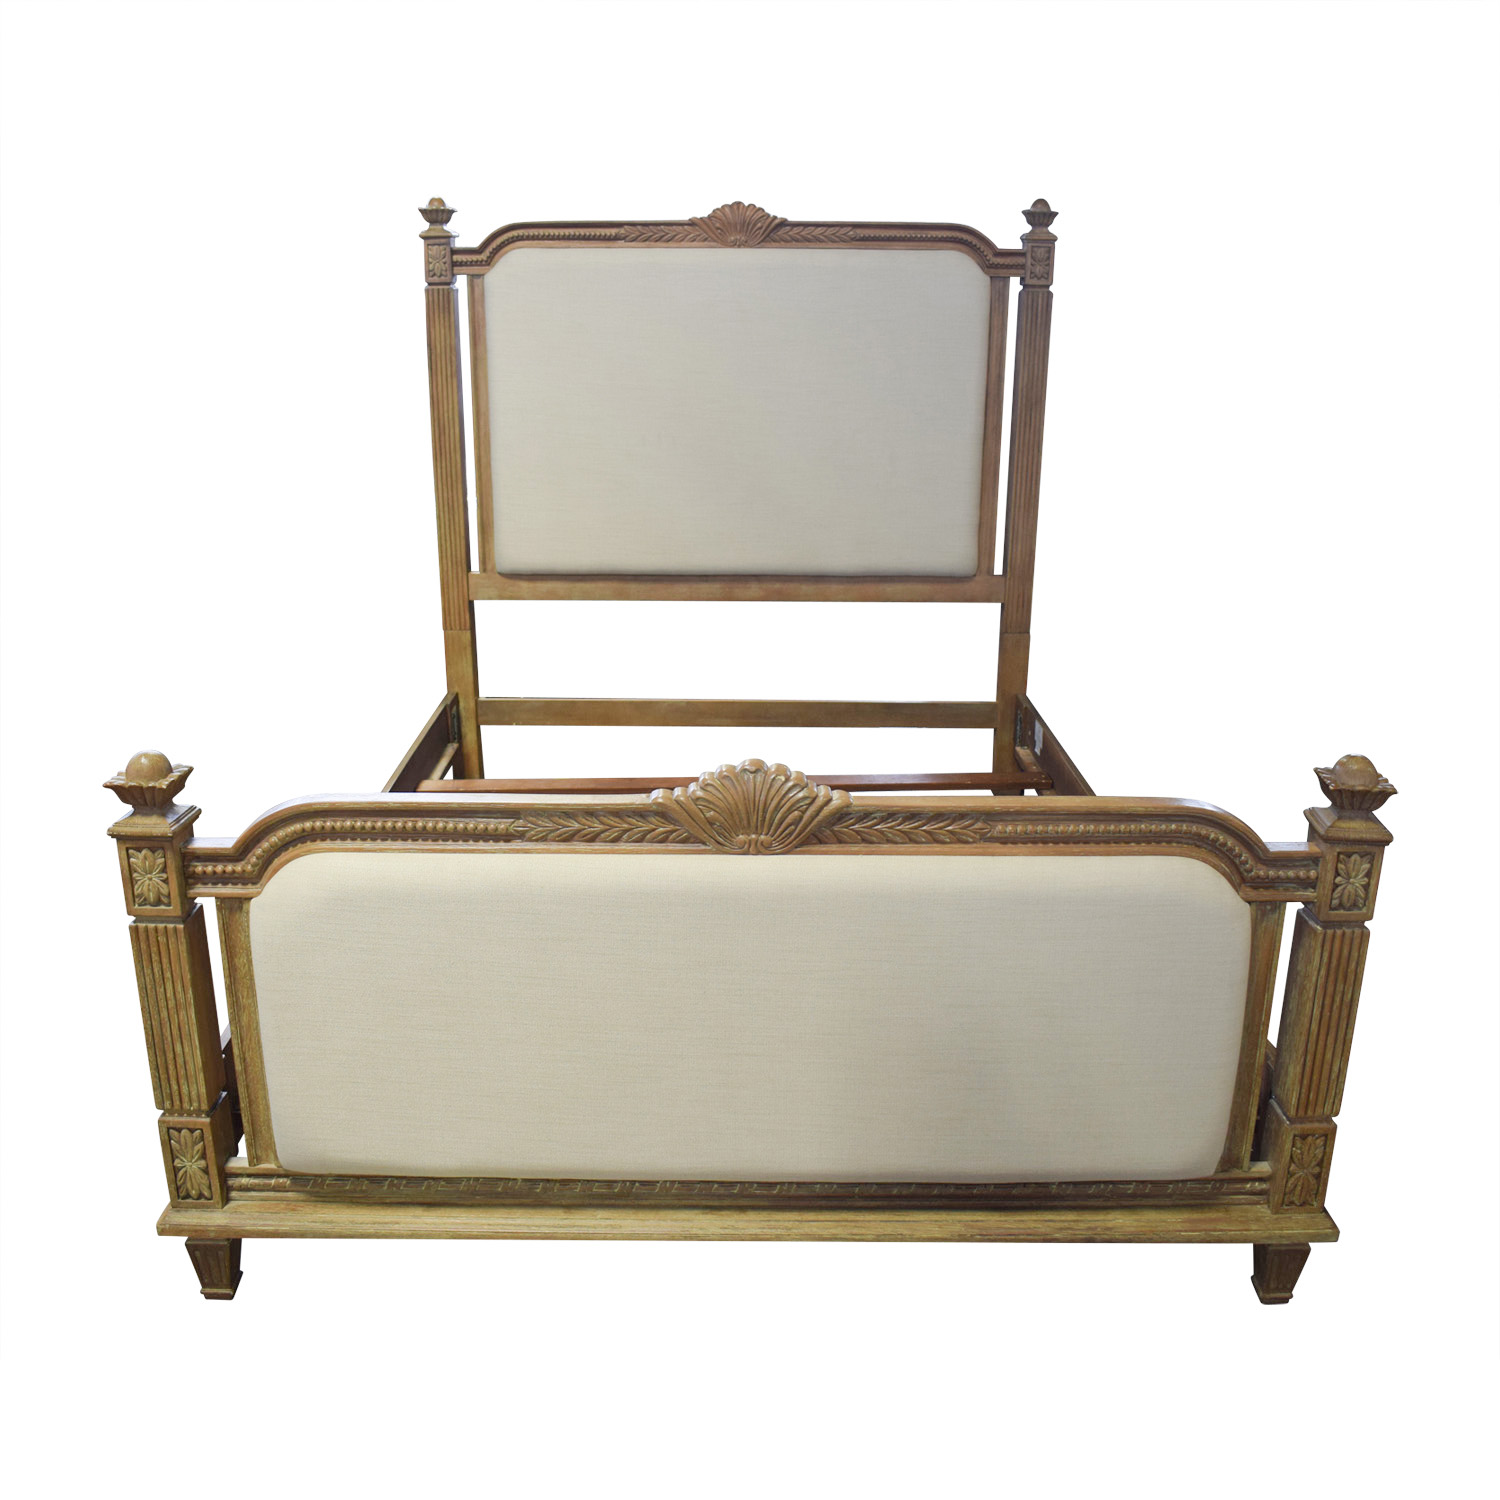 Raymour & Flanigan Raymour & Flanigan Whitmore Beige Queen Bed Frame price